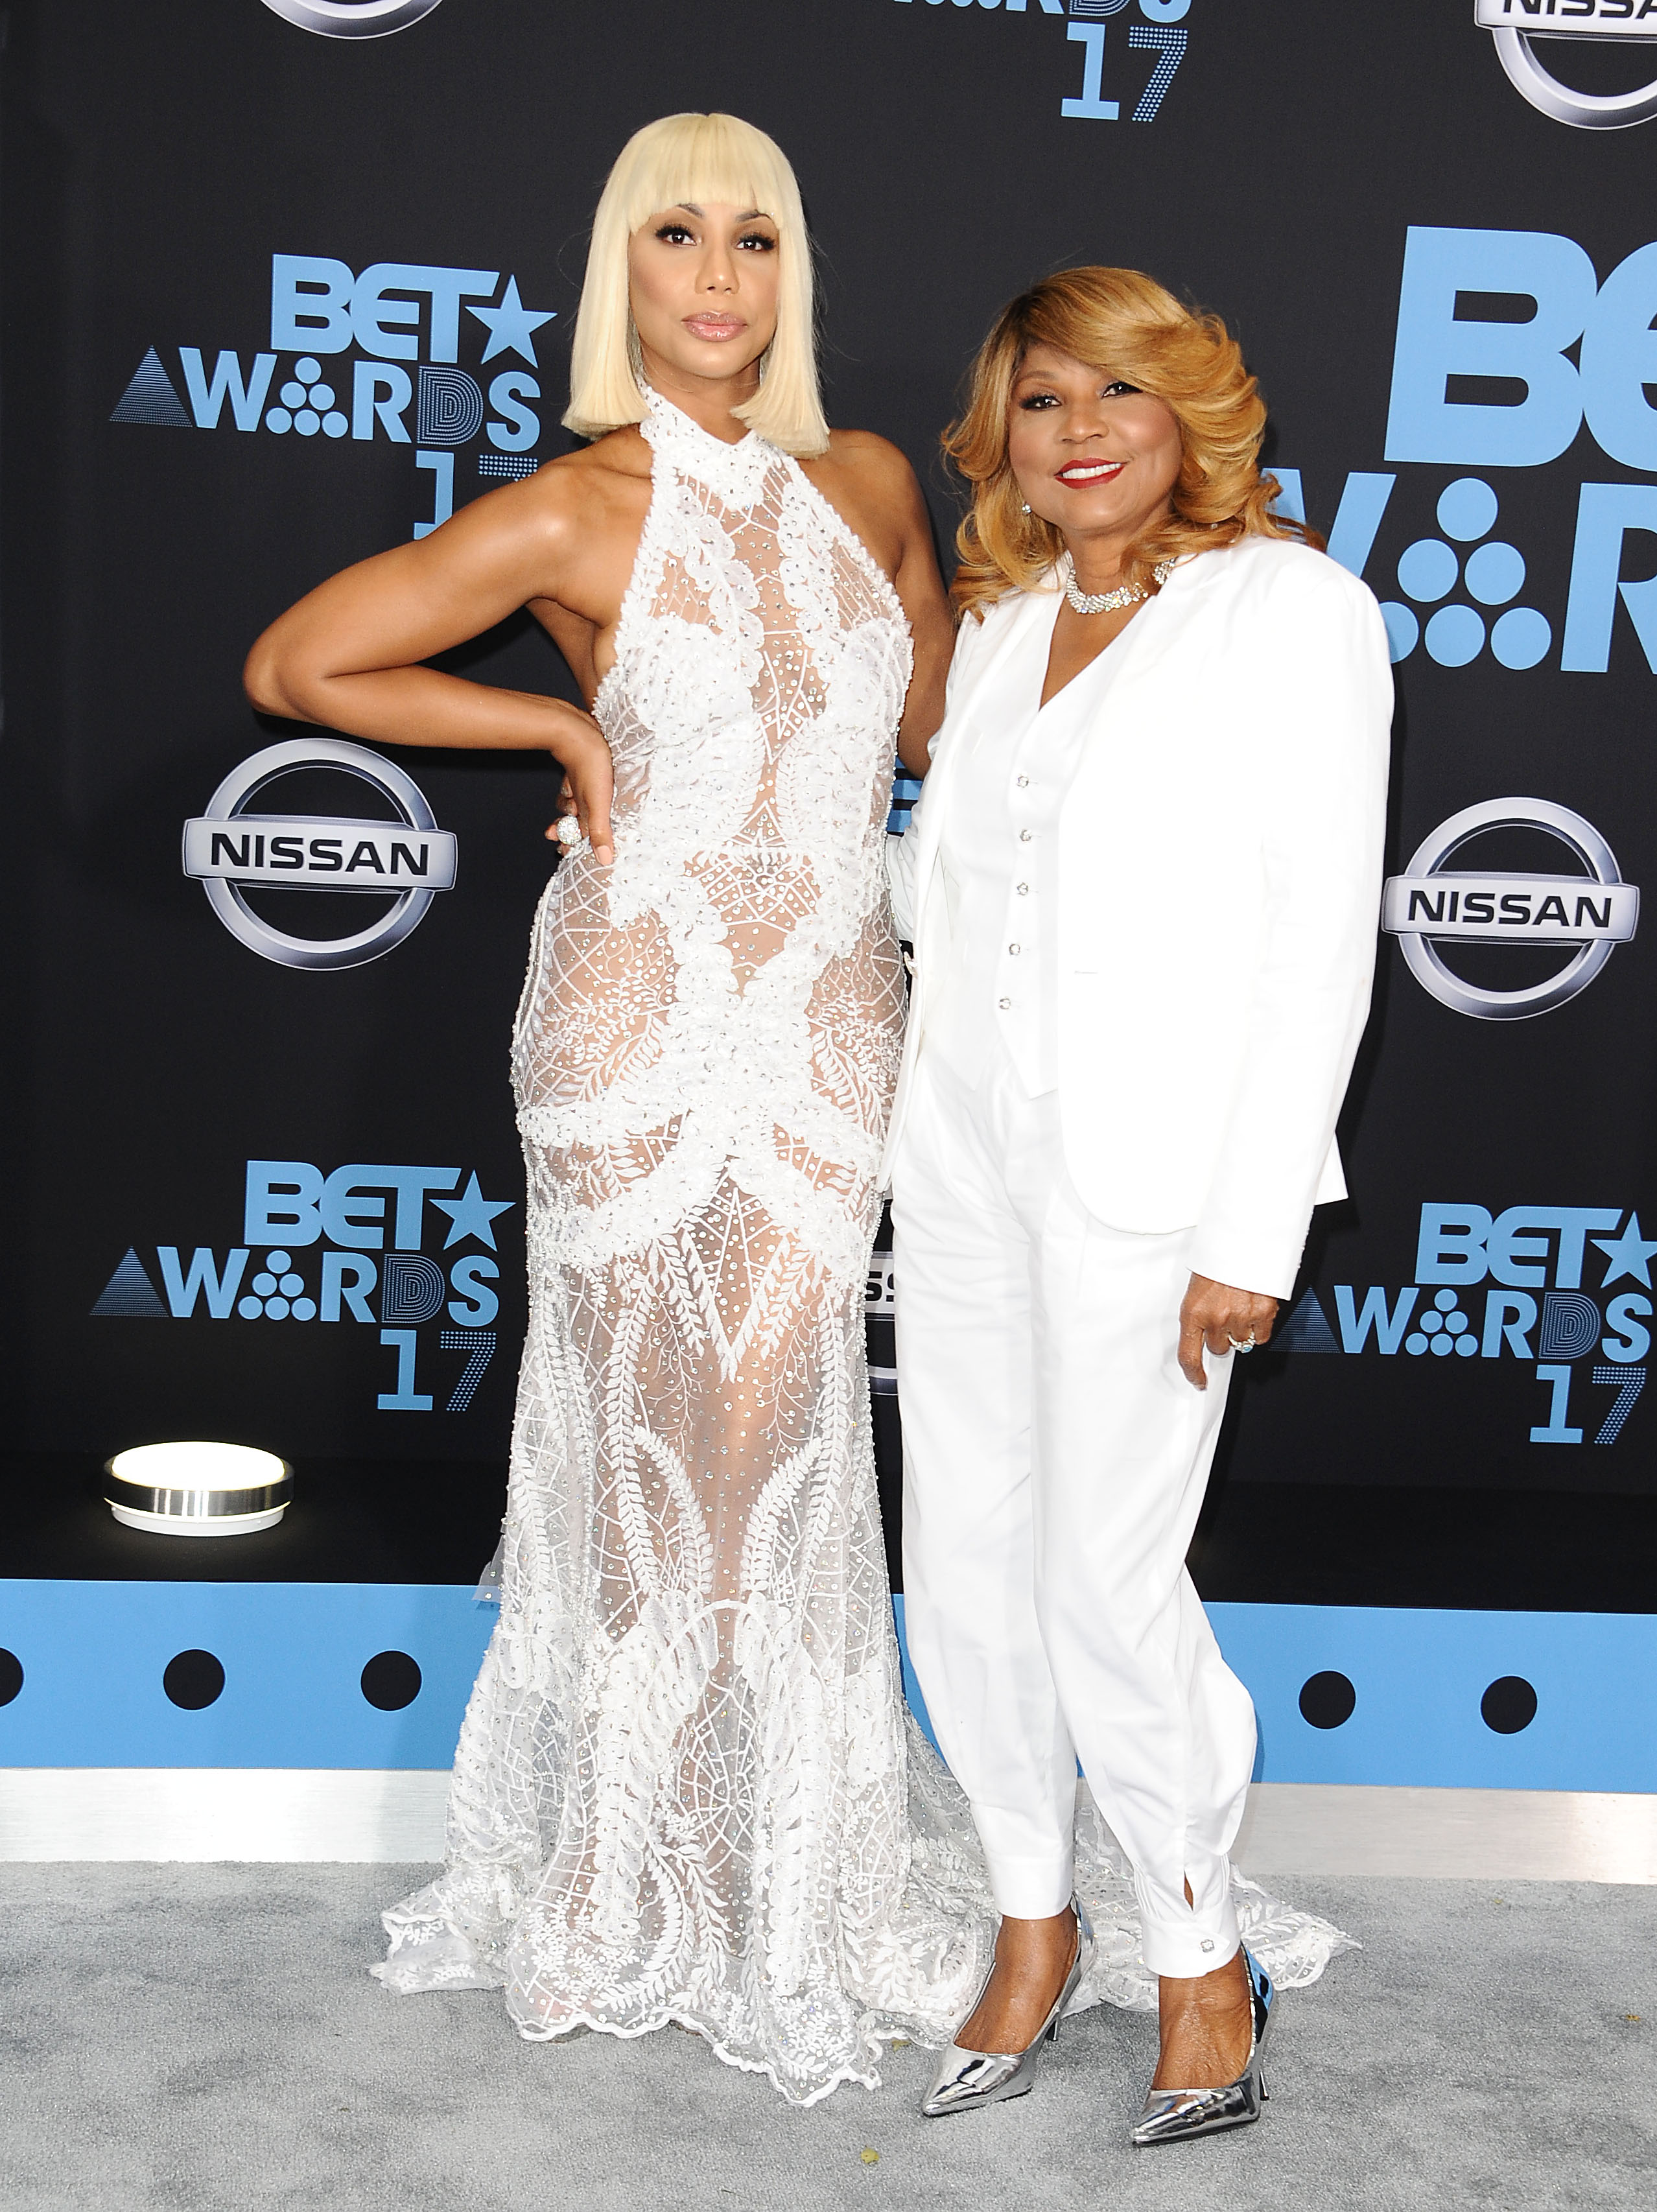 Toni Braxton's Mother Evelyn To Marry?